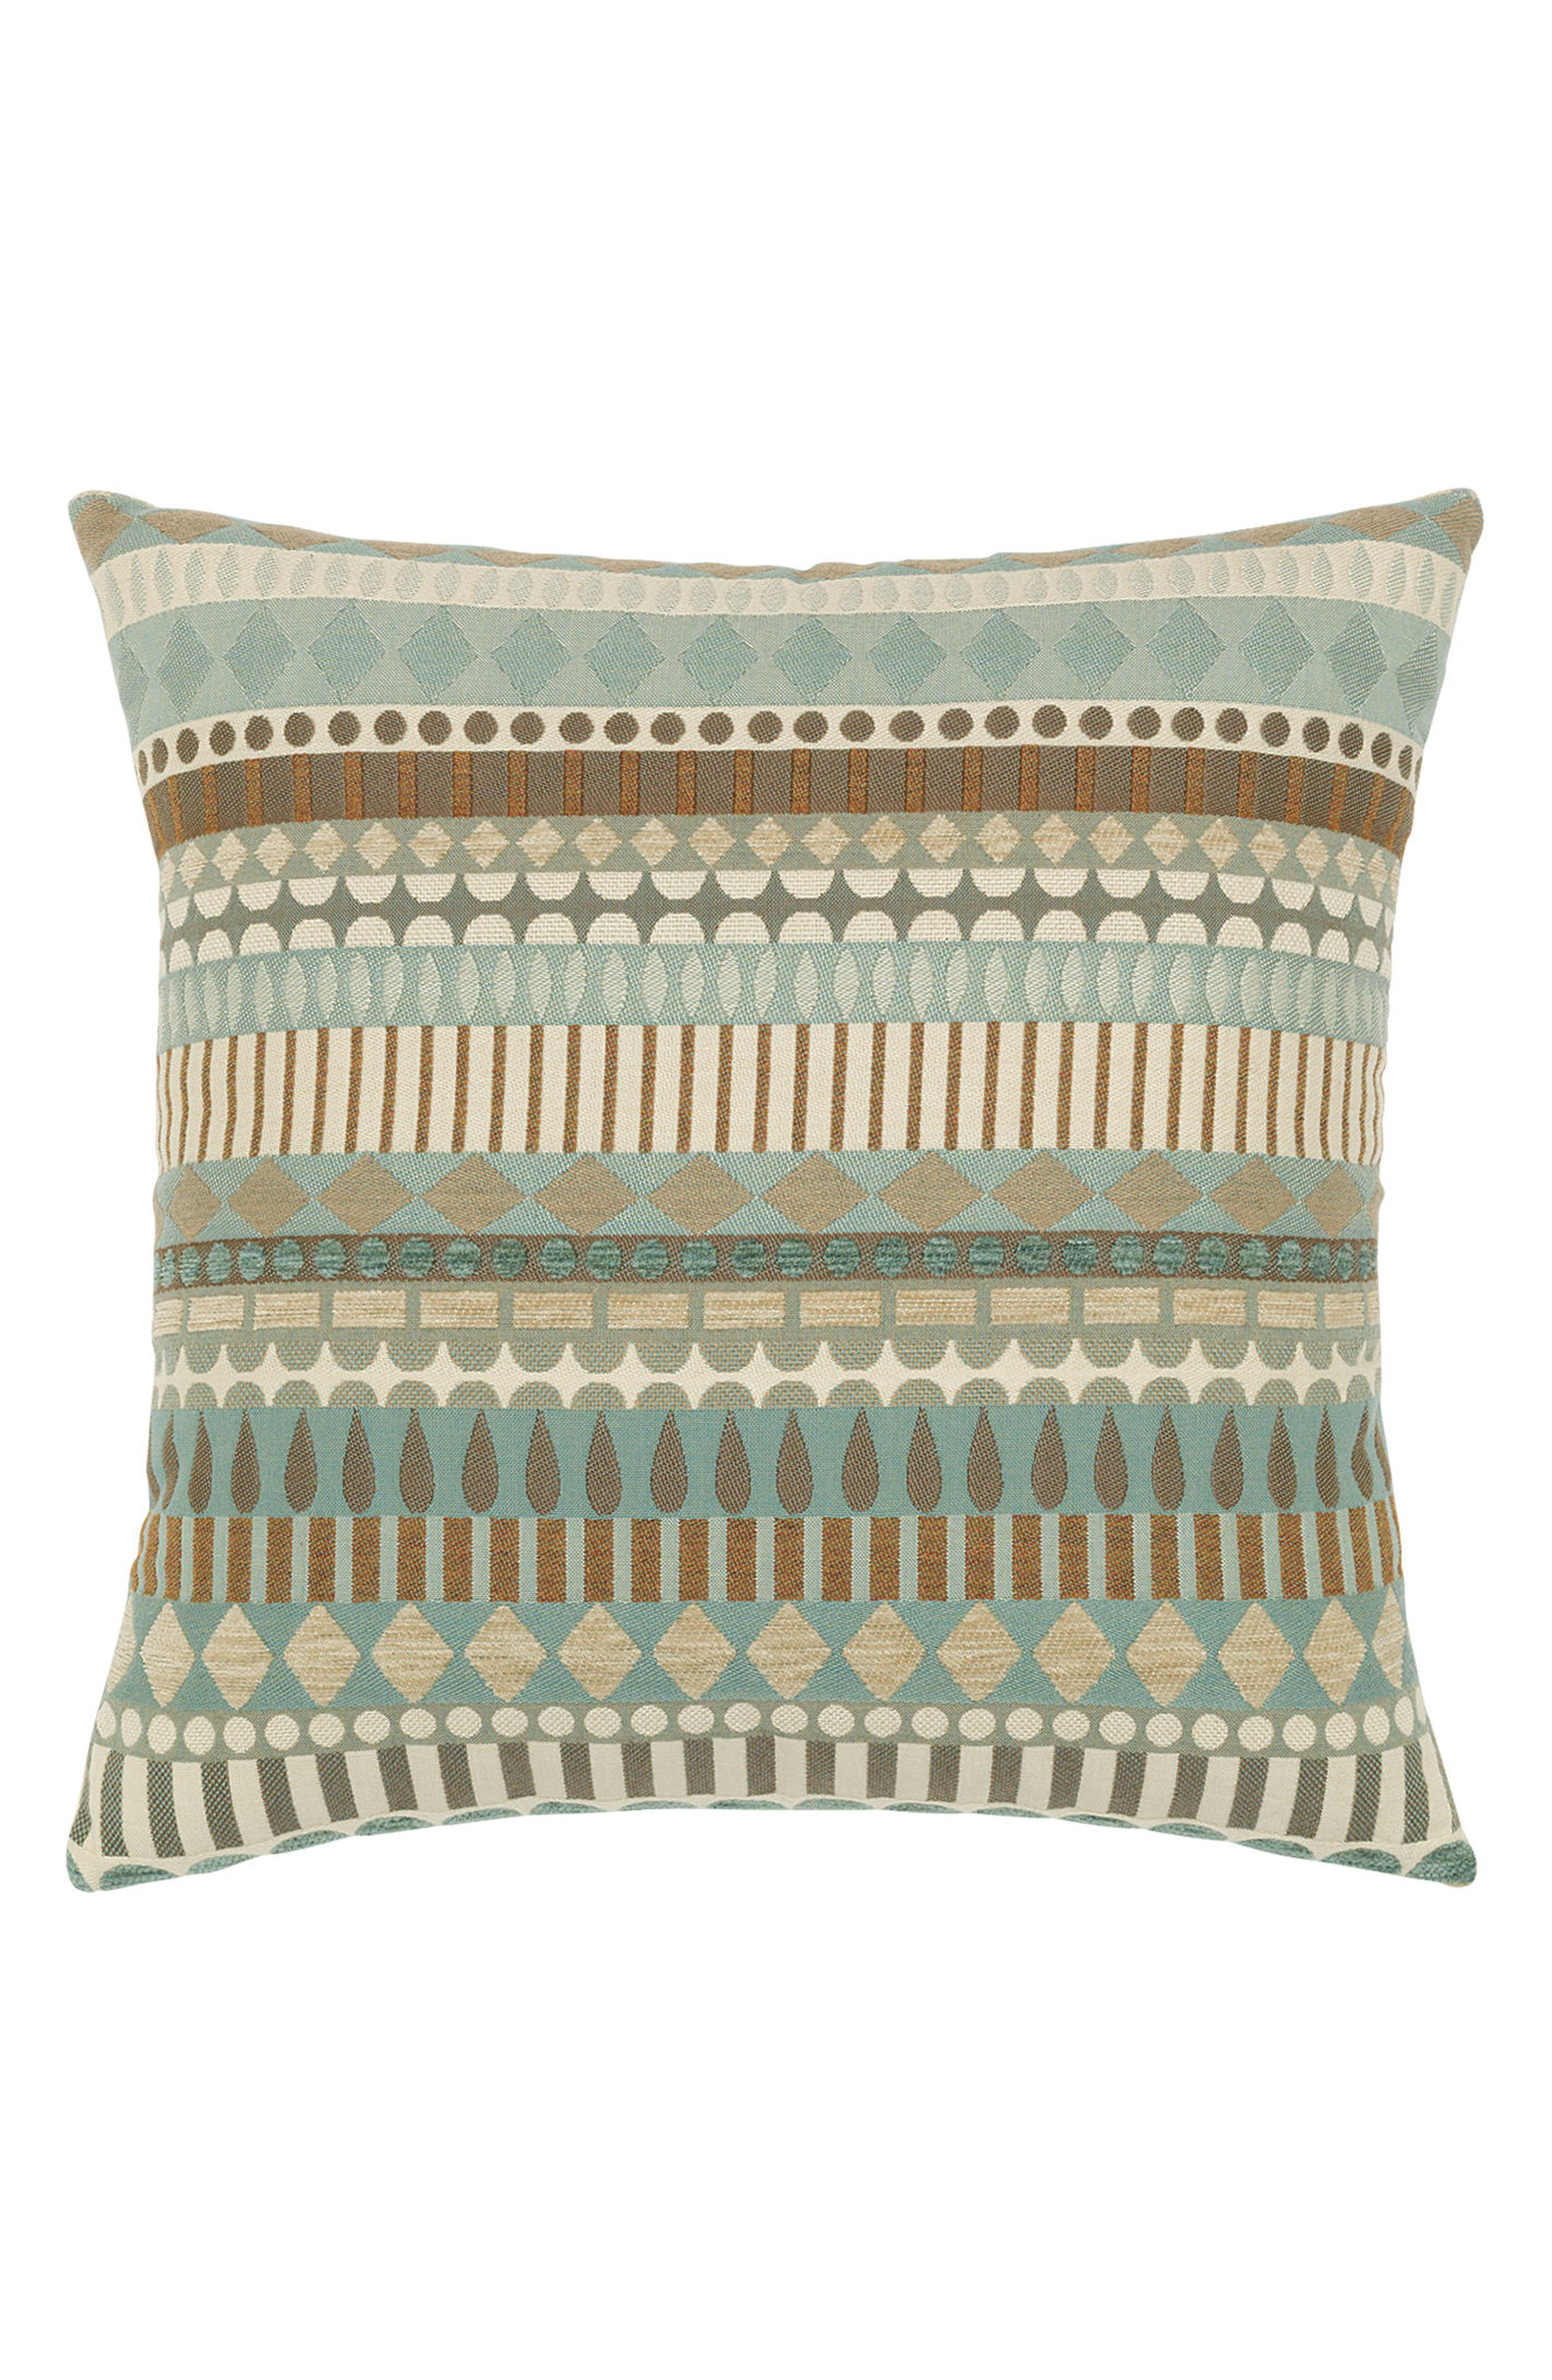 Deco Indoor/Outdoor Accent Pillow,                             Main thumbnail 1, color,                             400